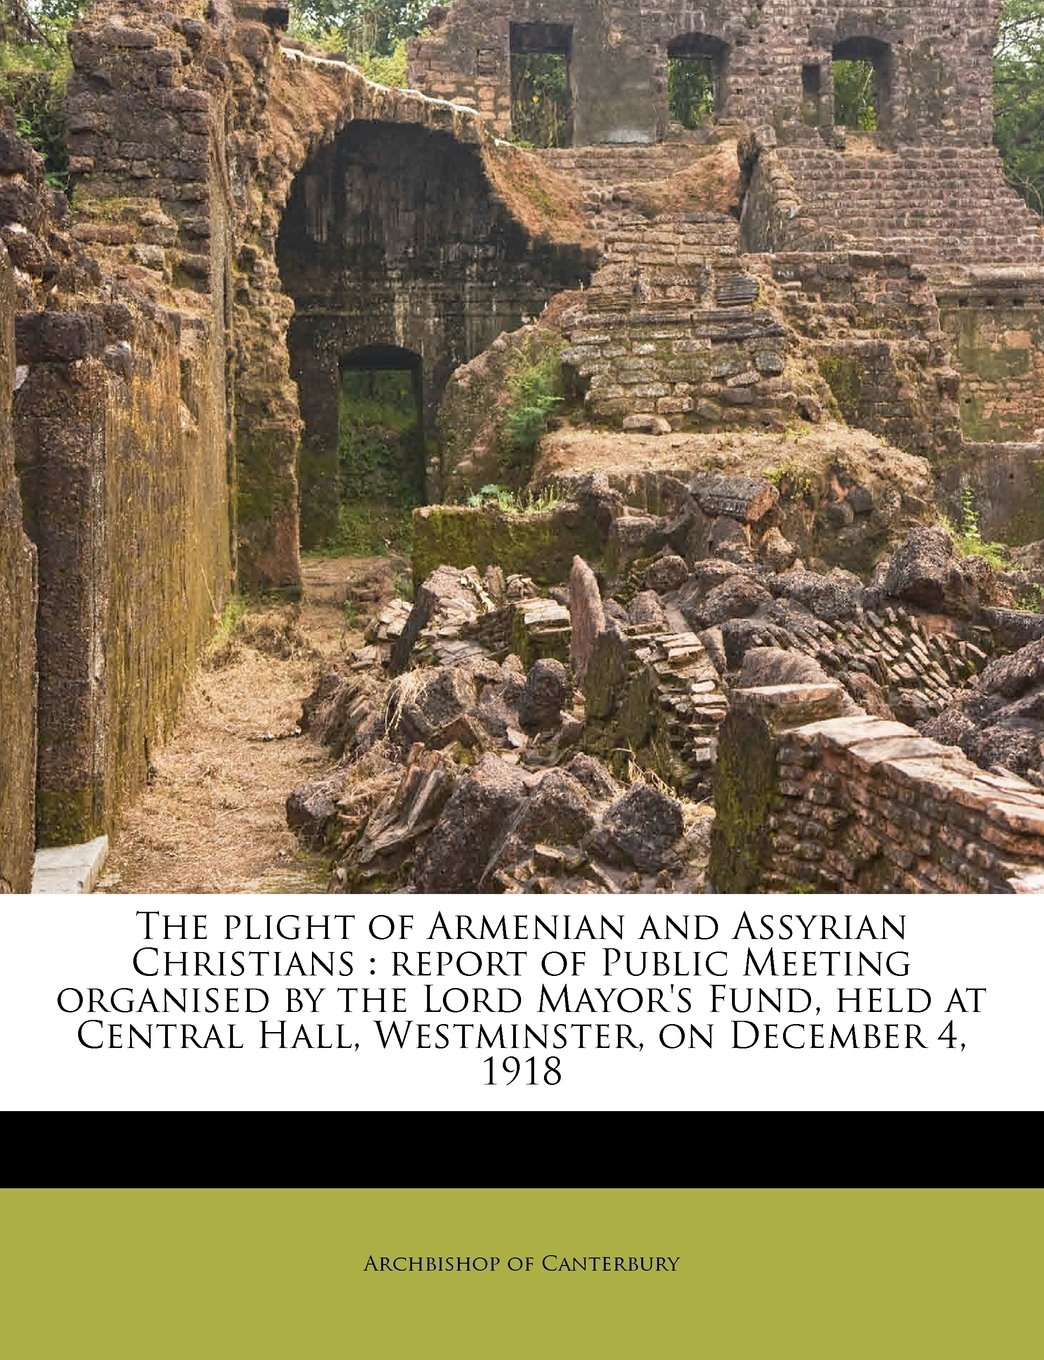 Download The plight of Armenian and Assyrian Christians: report of Public Meeting organised by the Lord Mayor's Fund, held at Central Hall, Westminster, on December 4, 1918 pdf epub